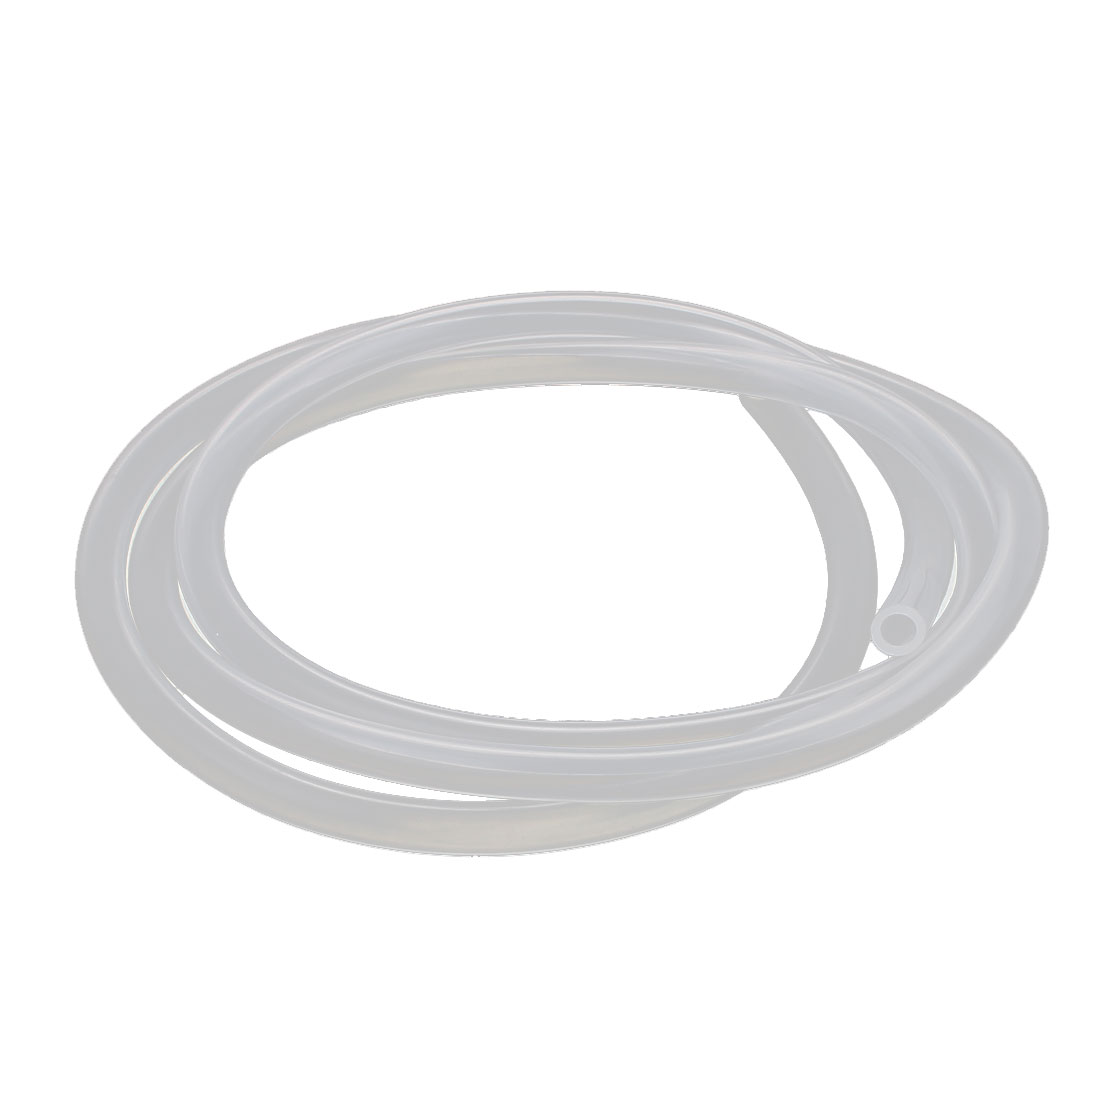 4mm x 6mm Silicone Vacuum Translucent Tube Beer Water Air Pump Hose Pipe 1 Meter Long